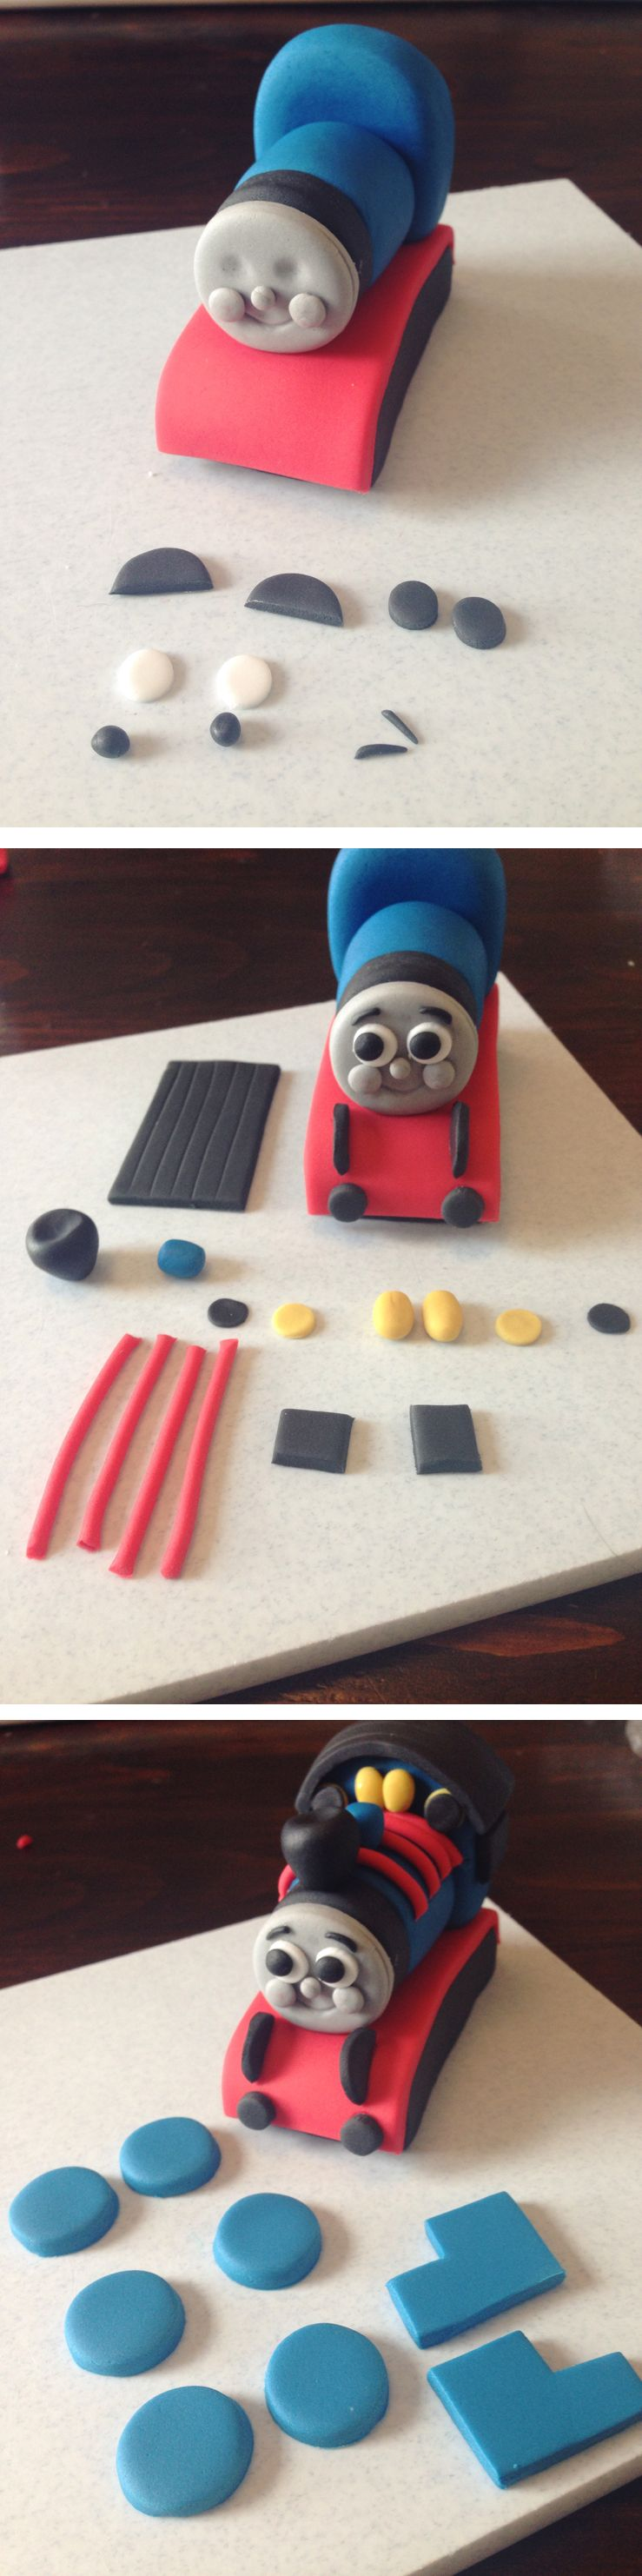 My Last Thomas Post Got Such A Positive Response That When Customer Ordered